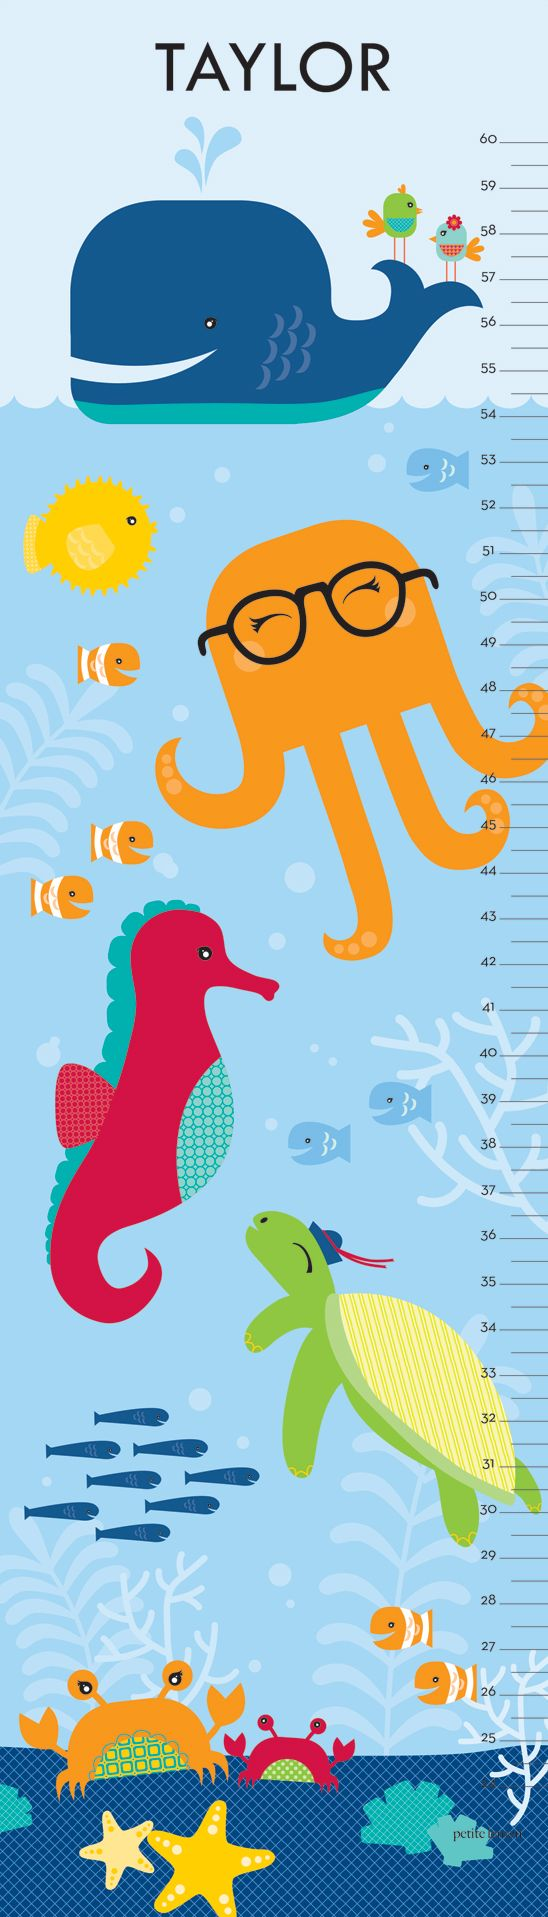 Under The Sea - Ocean Blue. Ocean Themed Personalized Growth Chart. With a jaunty whale, playful turtle and silly glasses-wearing octopus, our Under the Sea growth chart will make a splash in your little one's room. Available in three charming colors - Ocean Blue, Aquatic Teal or Coral Pink color schemes.